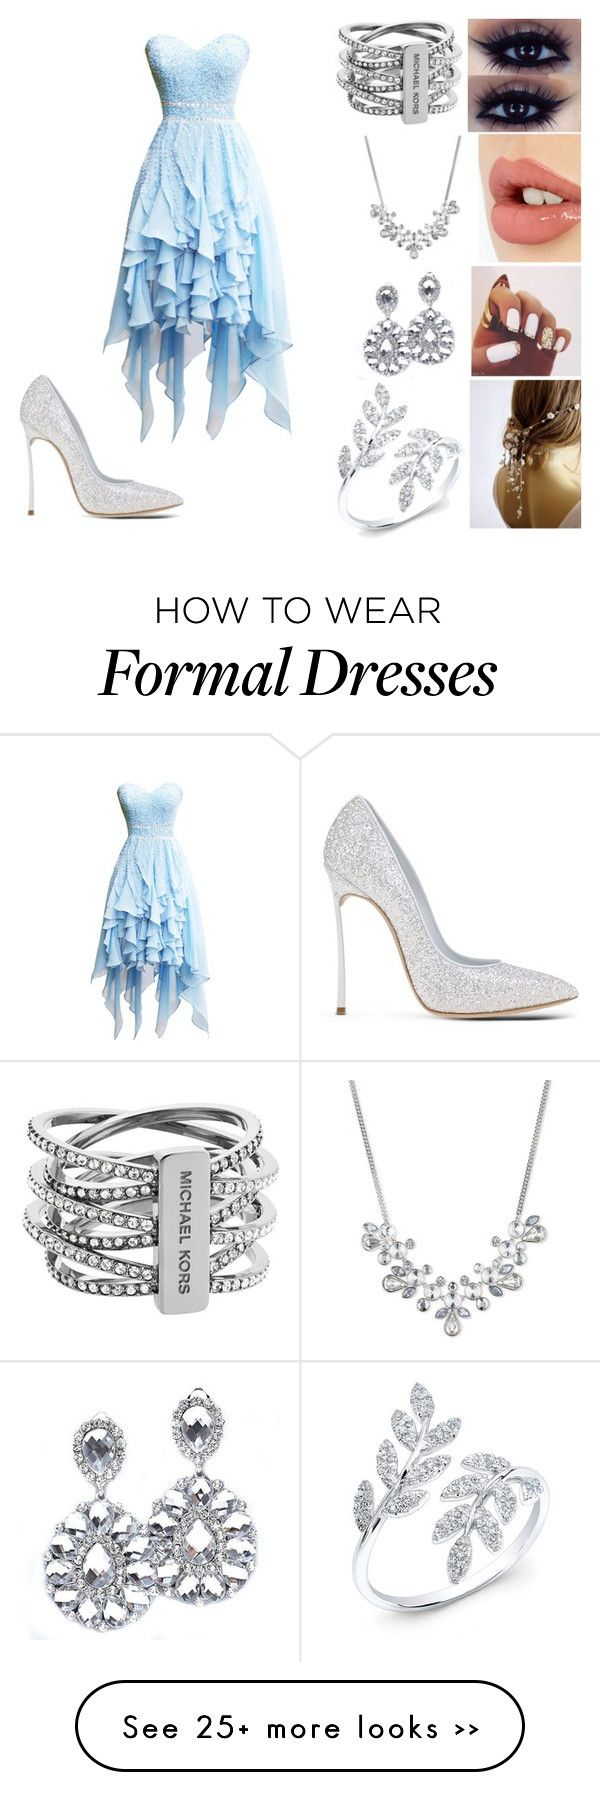 """""""Untitled #18"""" by missdolan on Polyvore featuring moda, Casadei, Charlotte Tilbury, Givenchy e Michael Kors"""